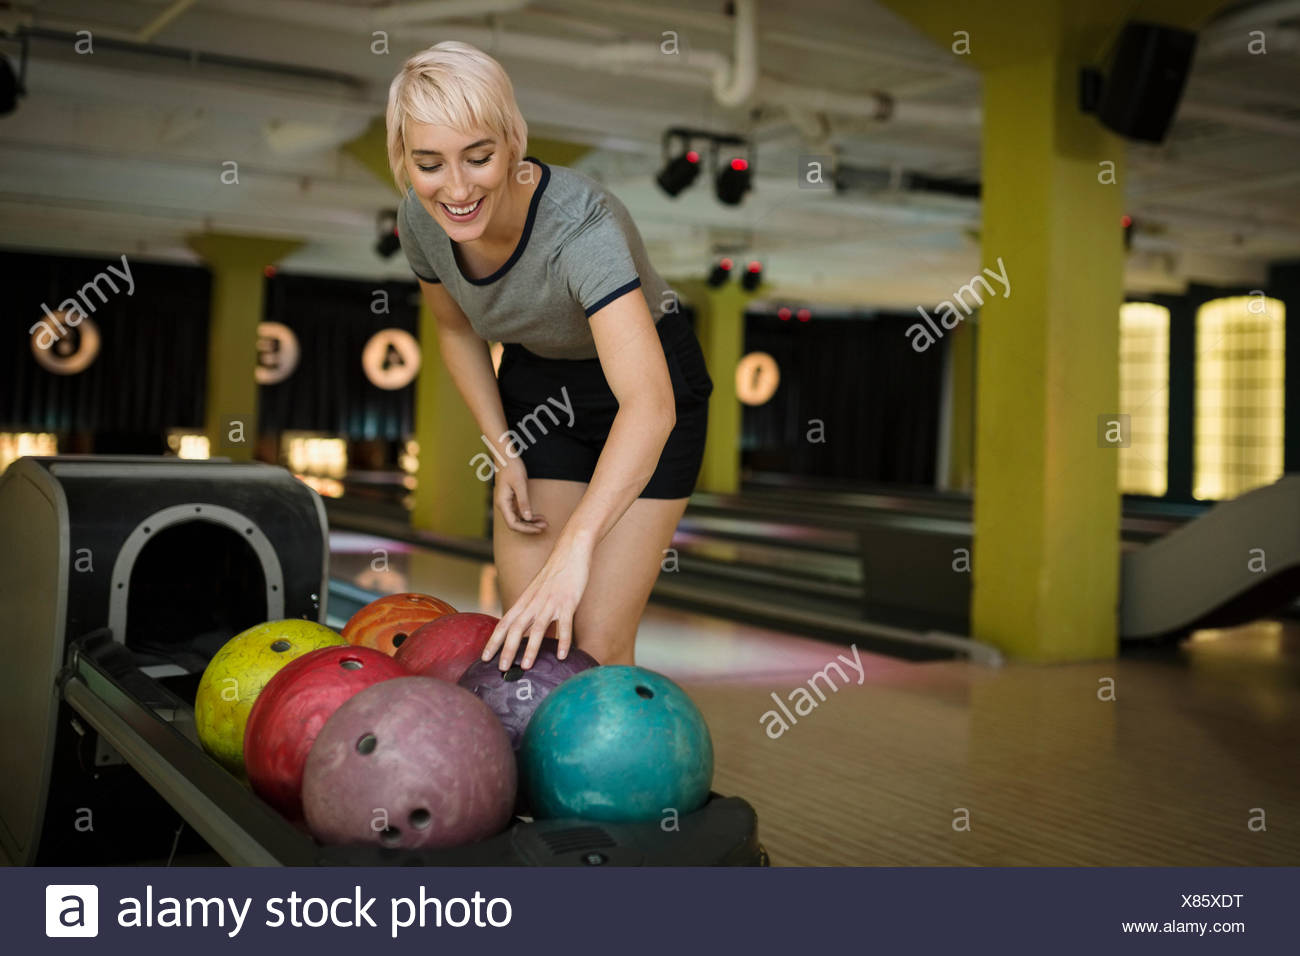 Young woman choosing bowling ball du rack Photo Stock